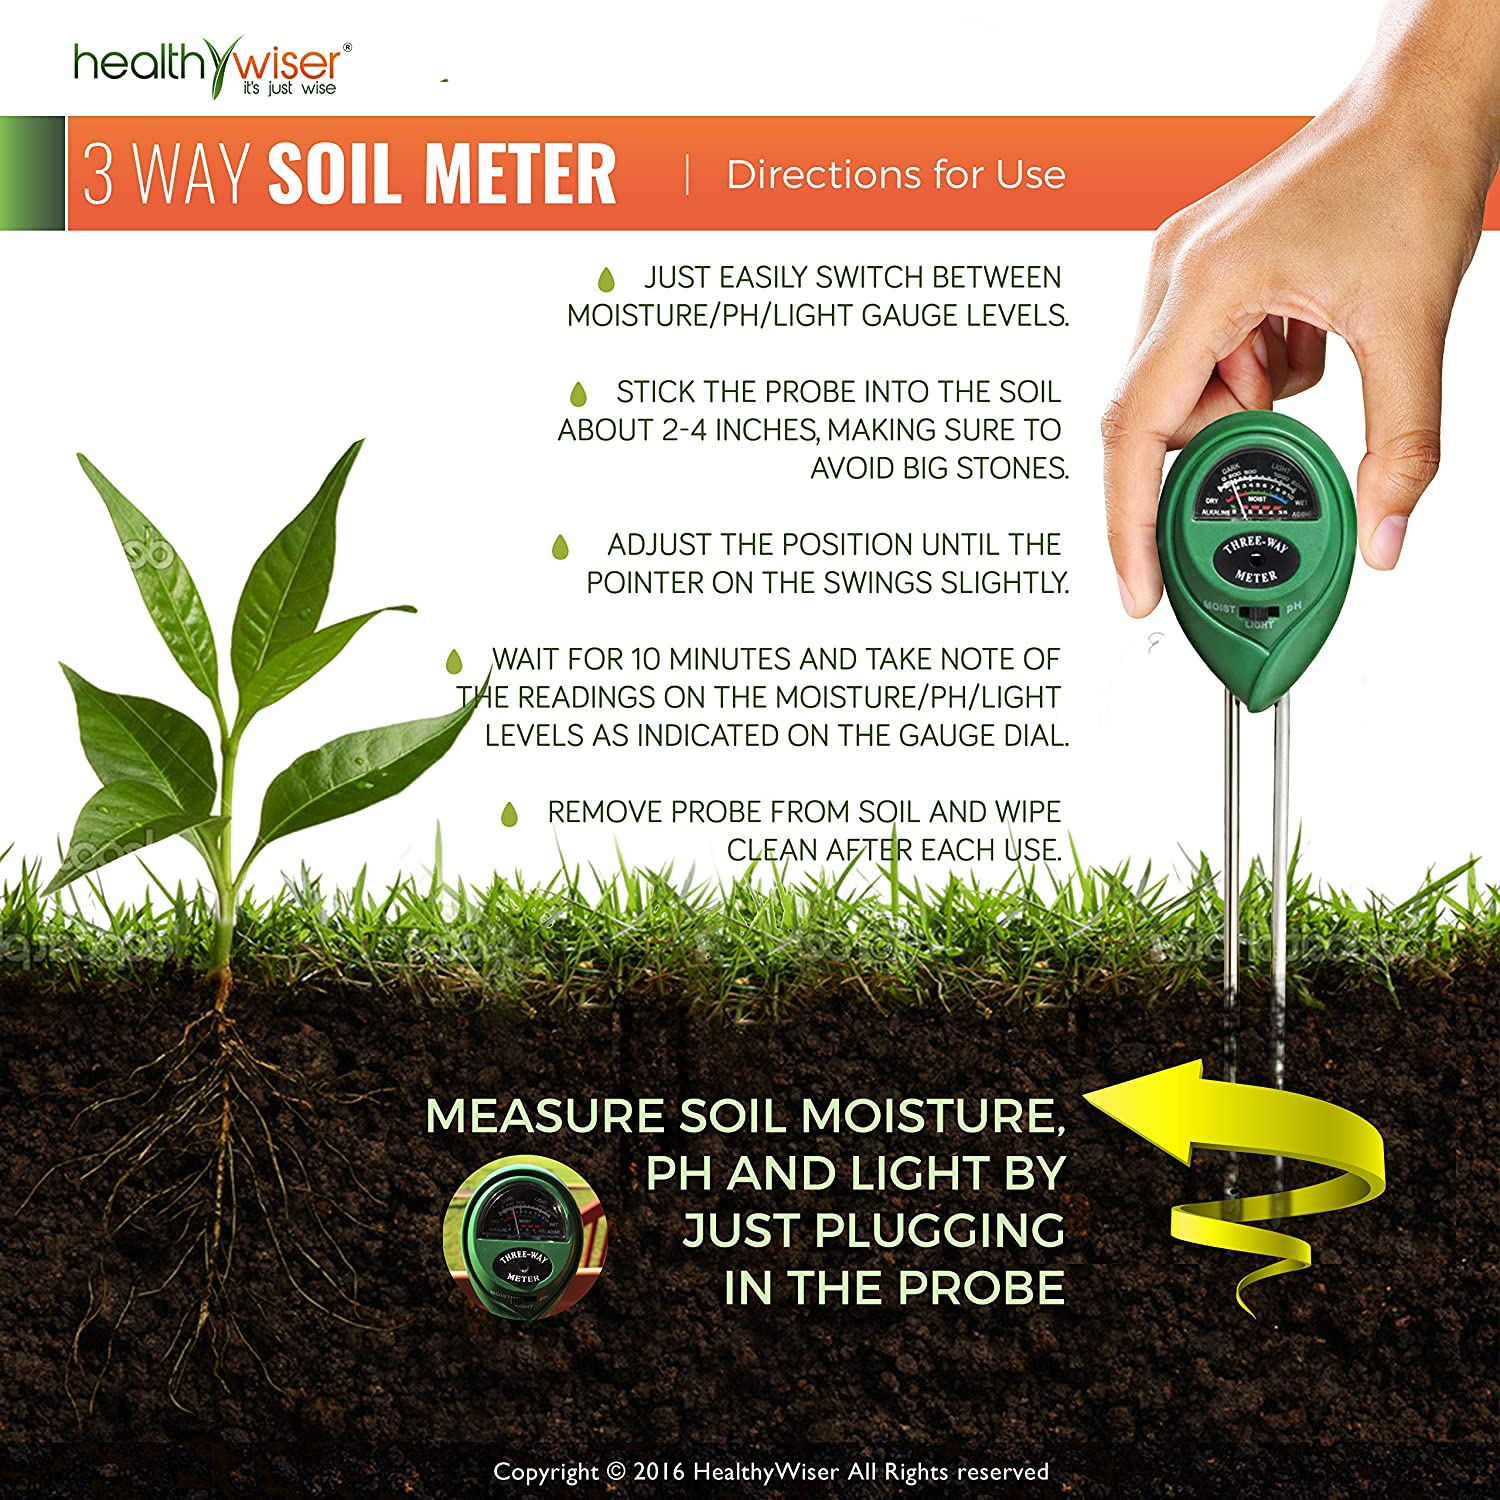 Garden home kit ph tester - Amazon Com Soil Ph Meter 3 In 1 Soil Test Kit For Moisture Light Ph A Must Have For Home And Garden Lawn Farm Plants Herbs Gardening Tools